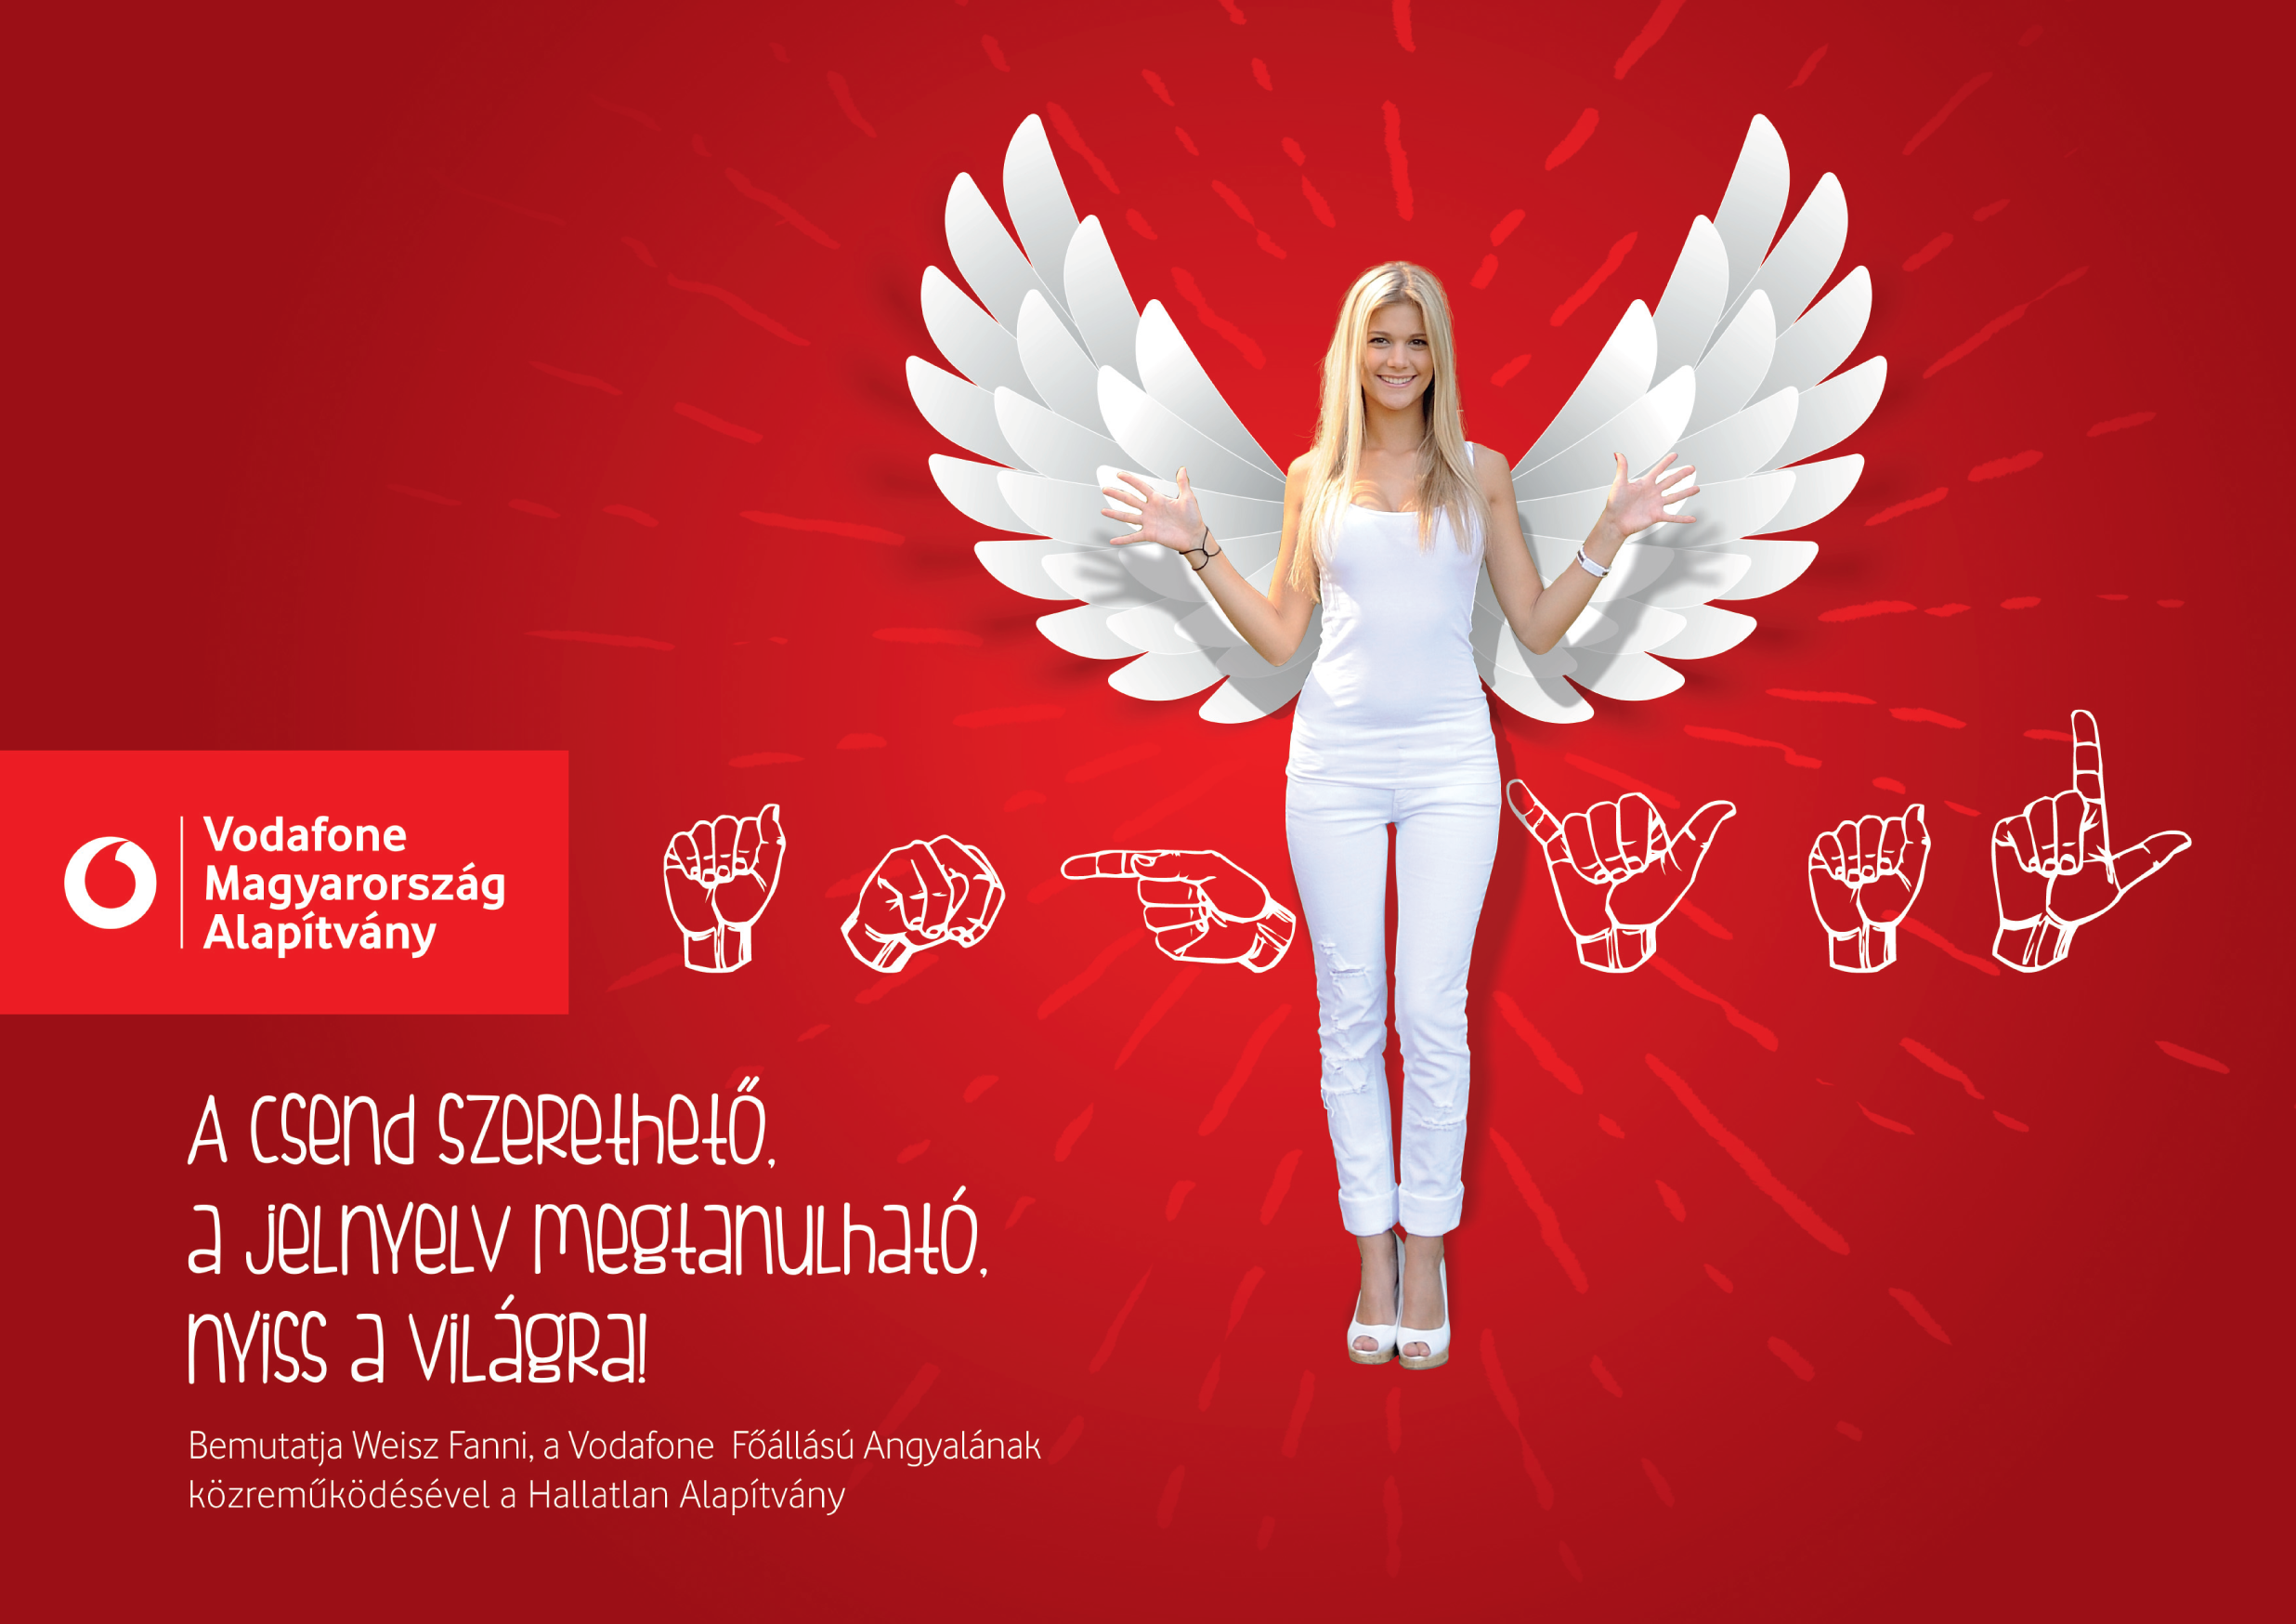 vodafone_weiss_fanni_leaf_view-1_1oldal.png